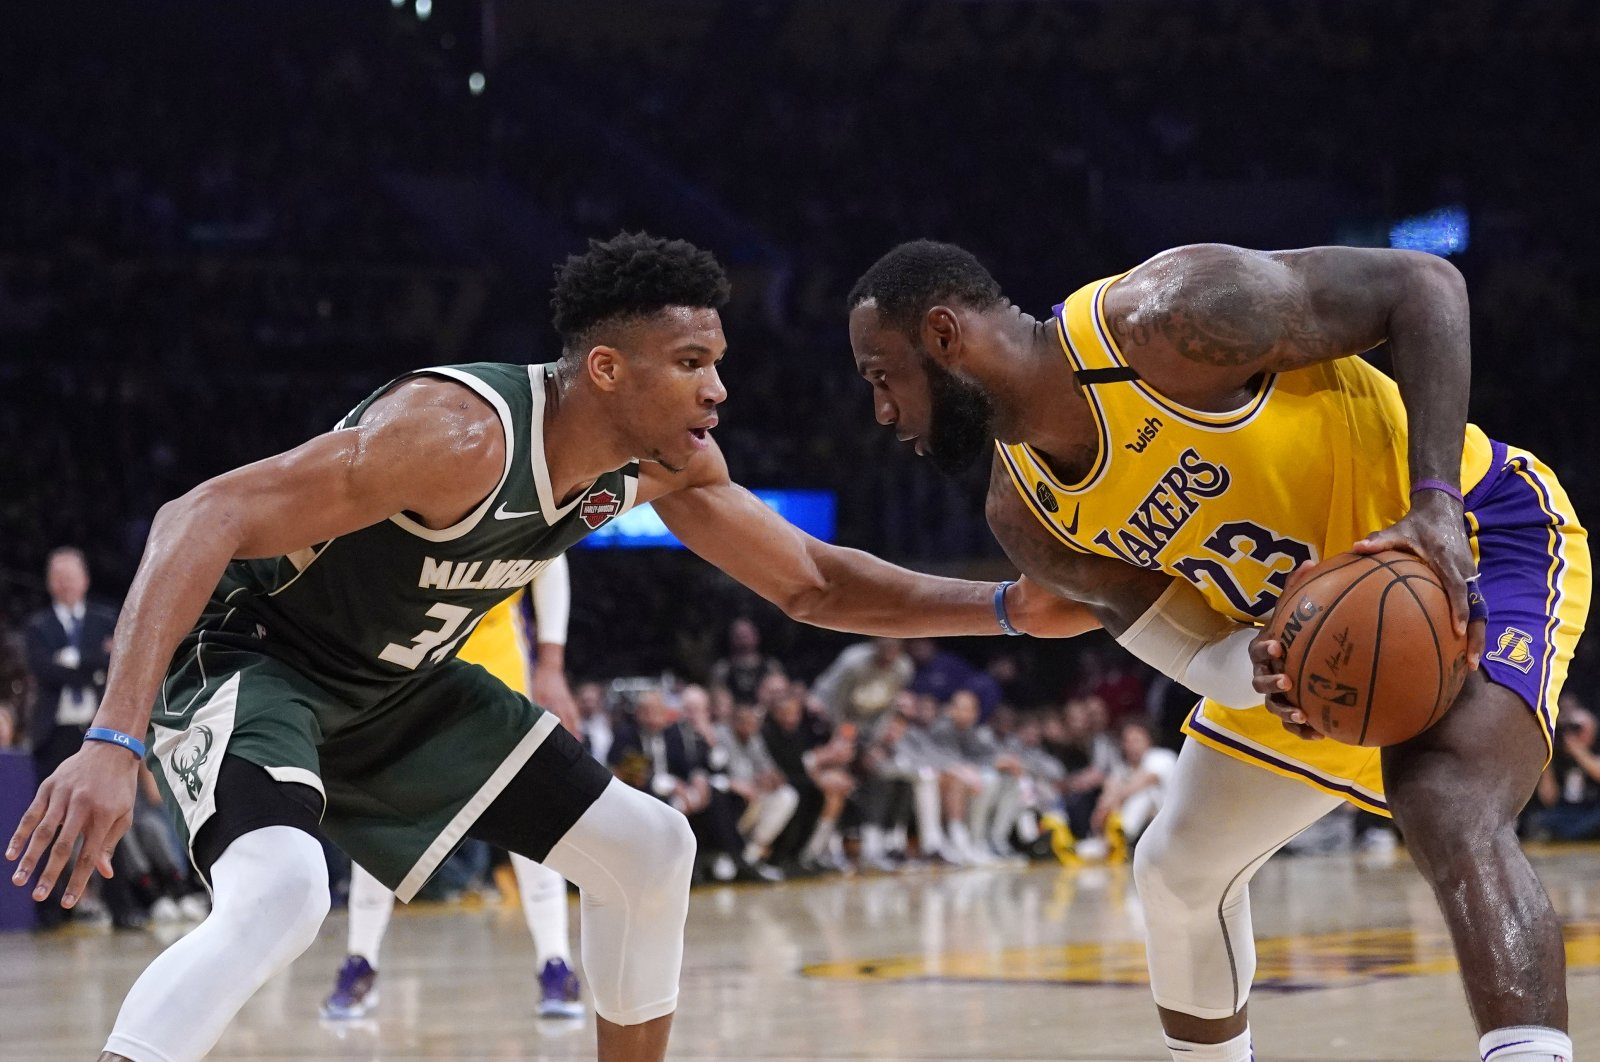 Los Angeles Lakers forward LeBron James, tries to get past Milwaukee Bucks forward Giannis Antetokounmpo during the second half of an NBA basketball game Friday, March 6, 2020, in Los Angeles. (AP Photo)